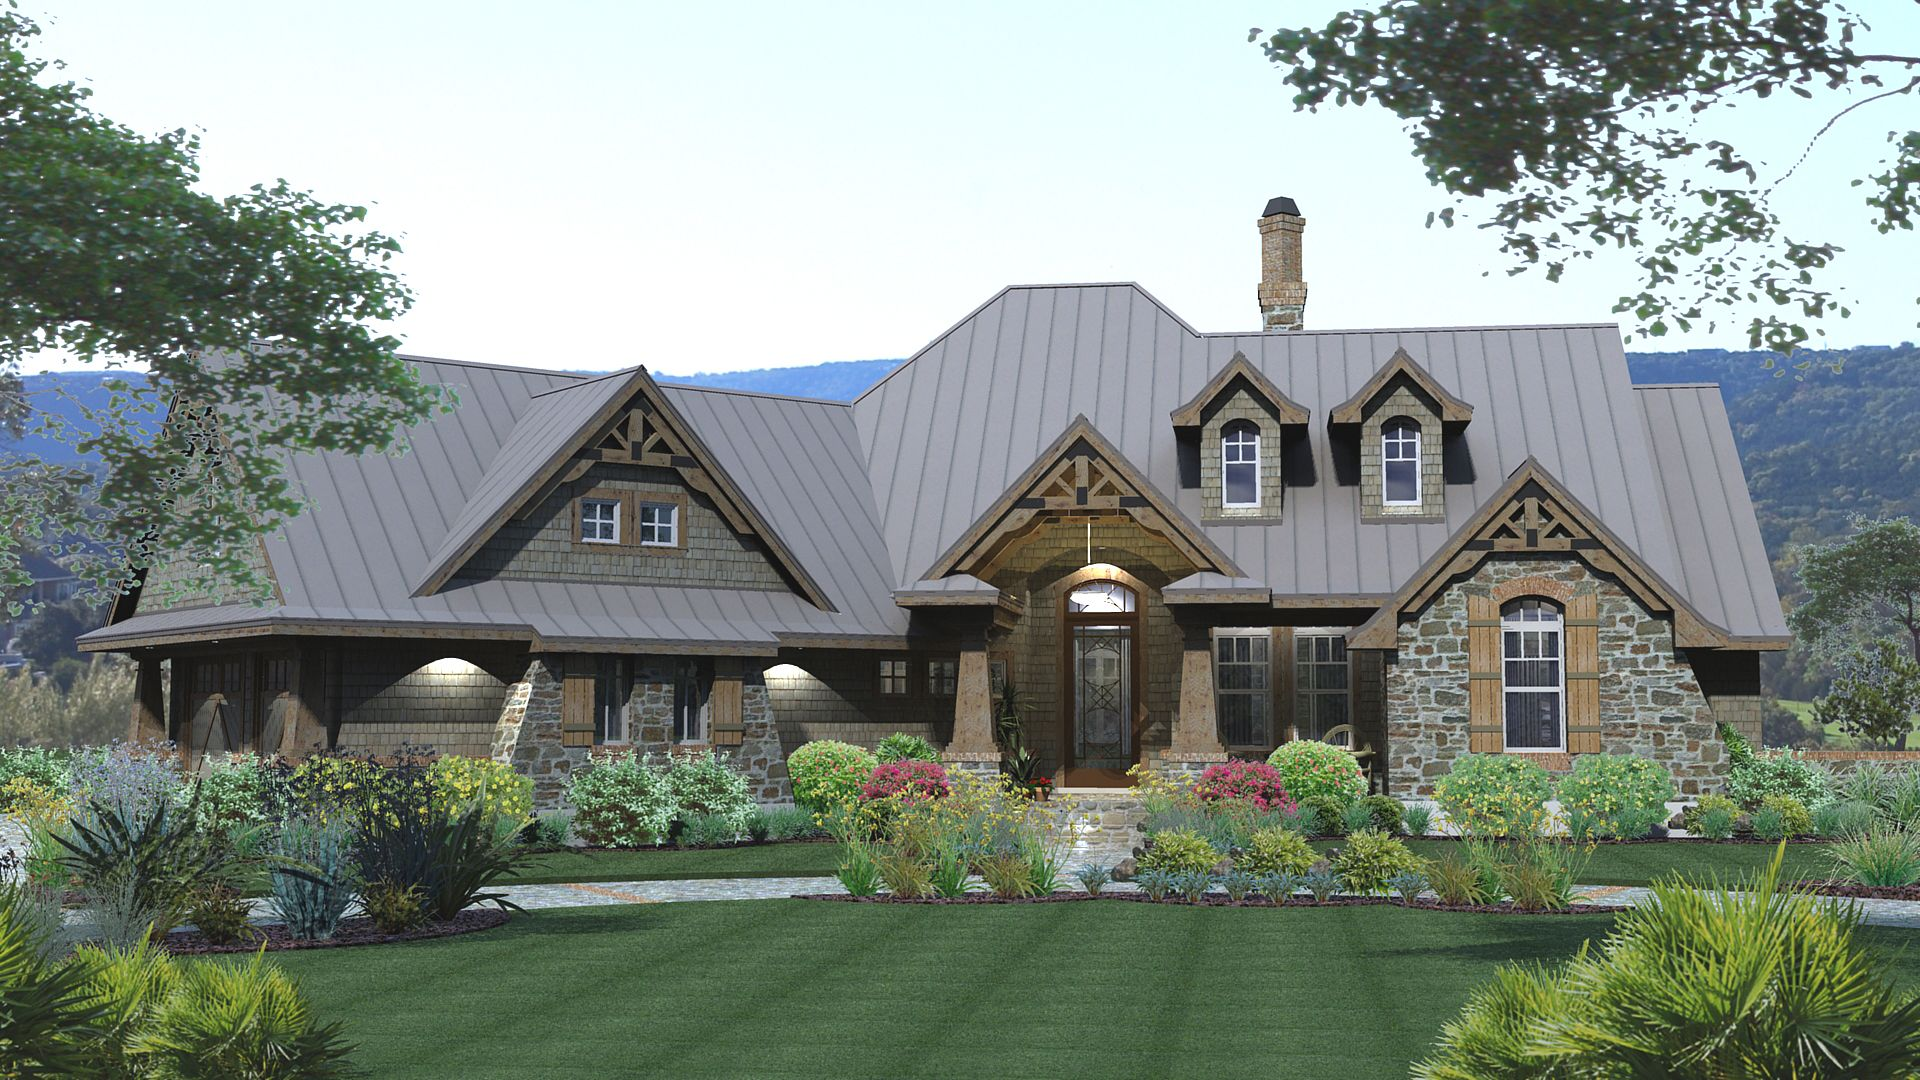 Plan Wg Rugged Craftsman Dream Home Plan